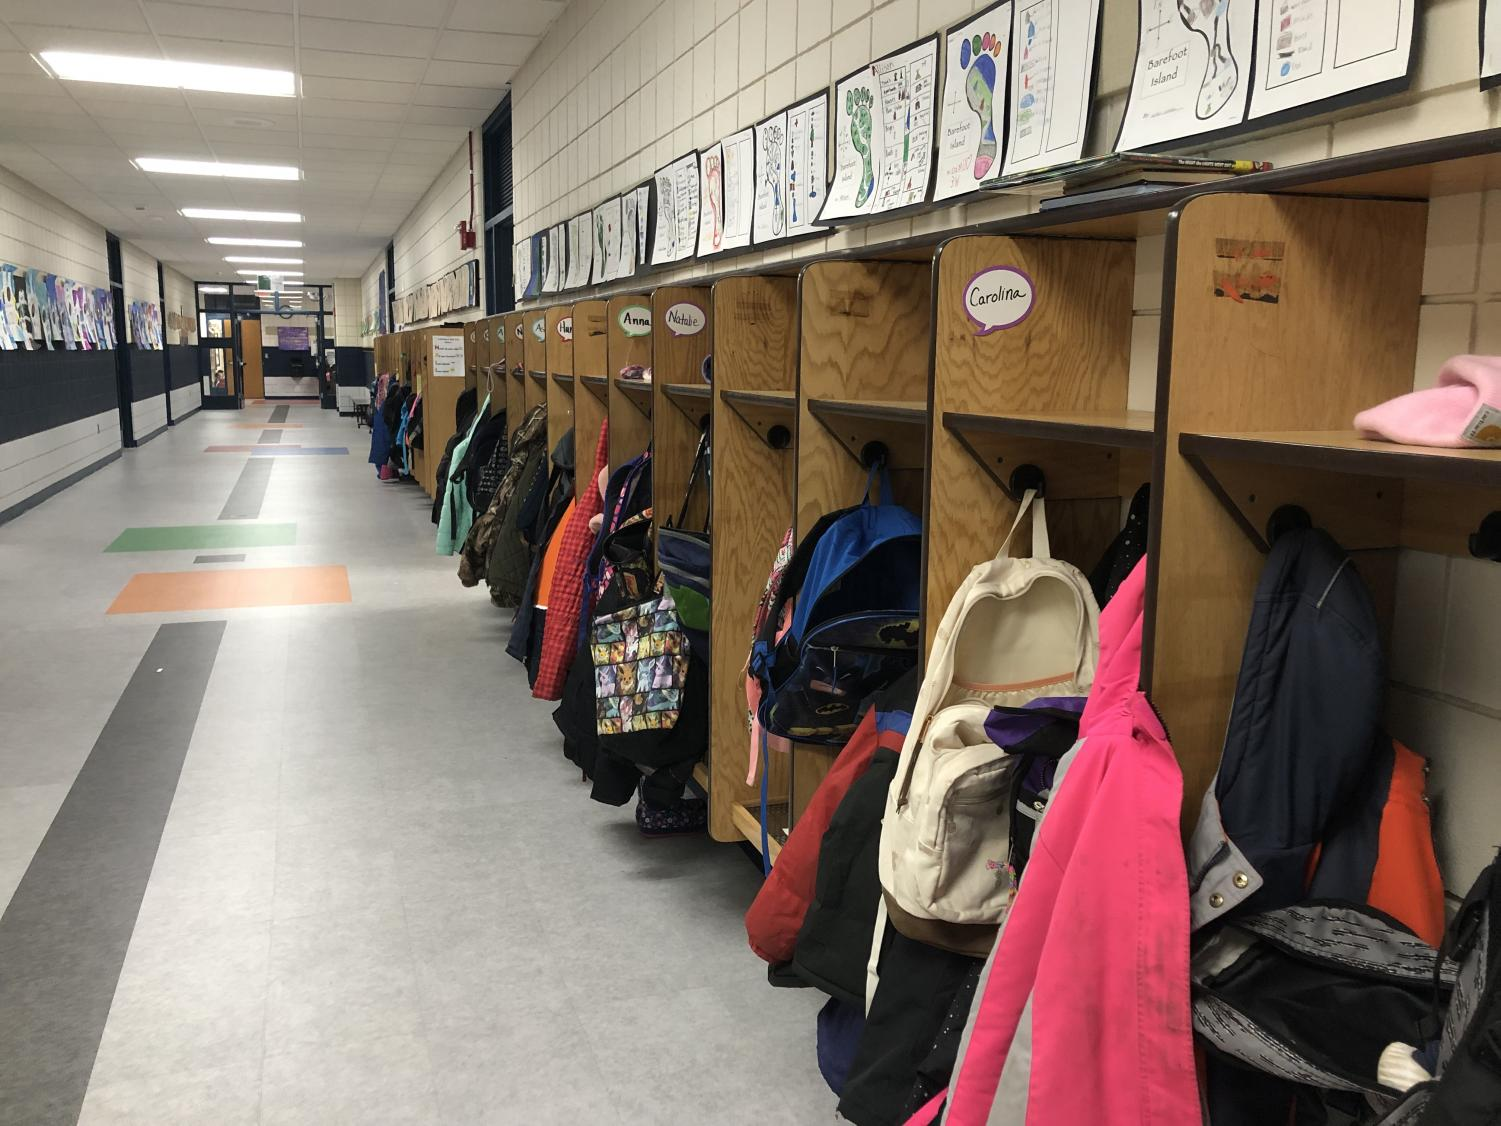 During+drills%2C+students+hide+under+lockers+and+in+rooms+to+practice+positioning.%0A%C2%A92019+Taylor+Pomasl